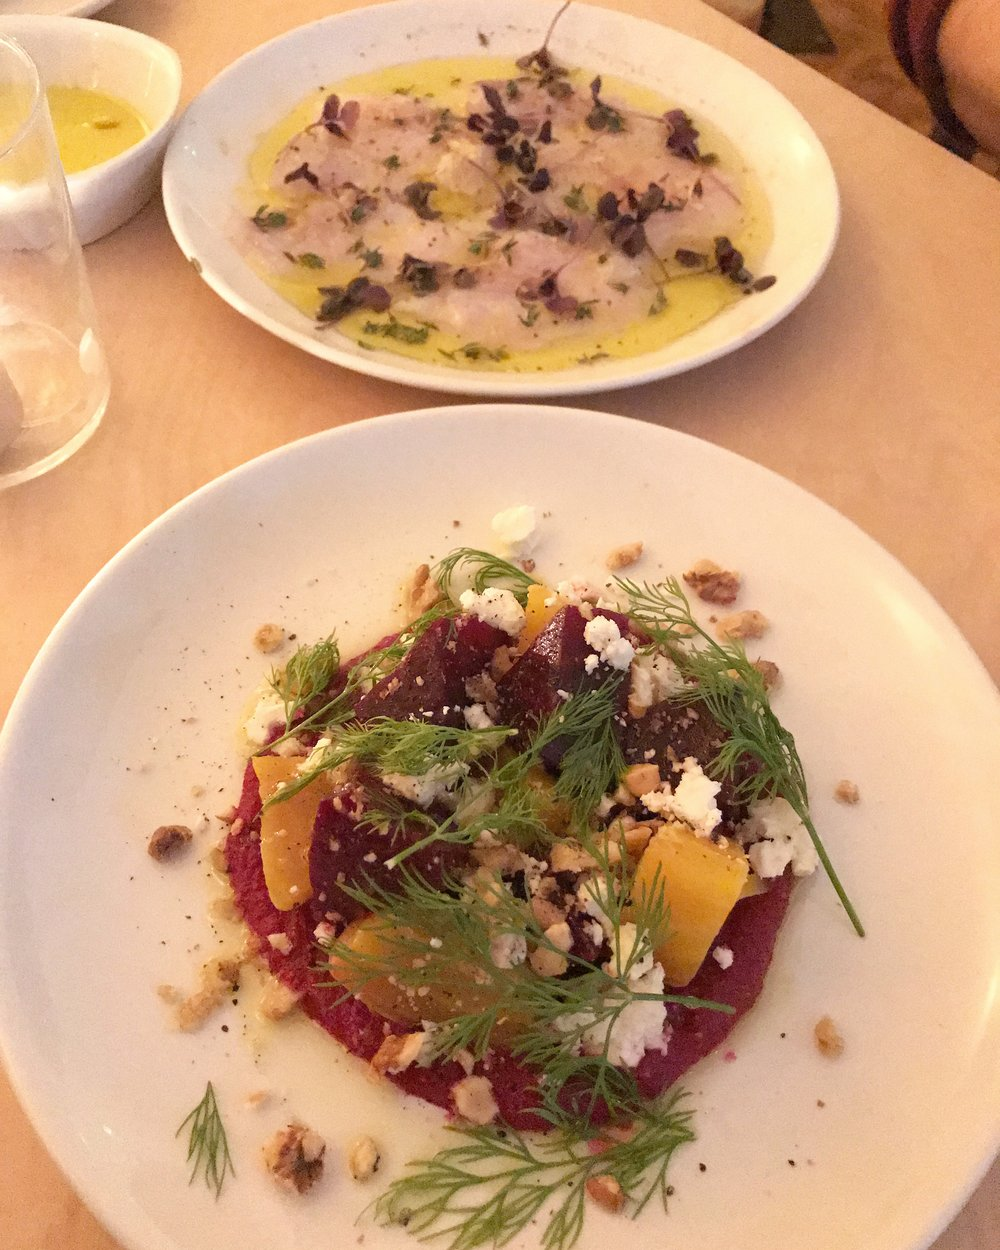 Beetroot, feta, walnut and dill with sea bass ceviche at the back